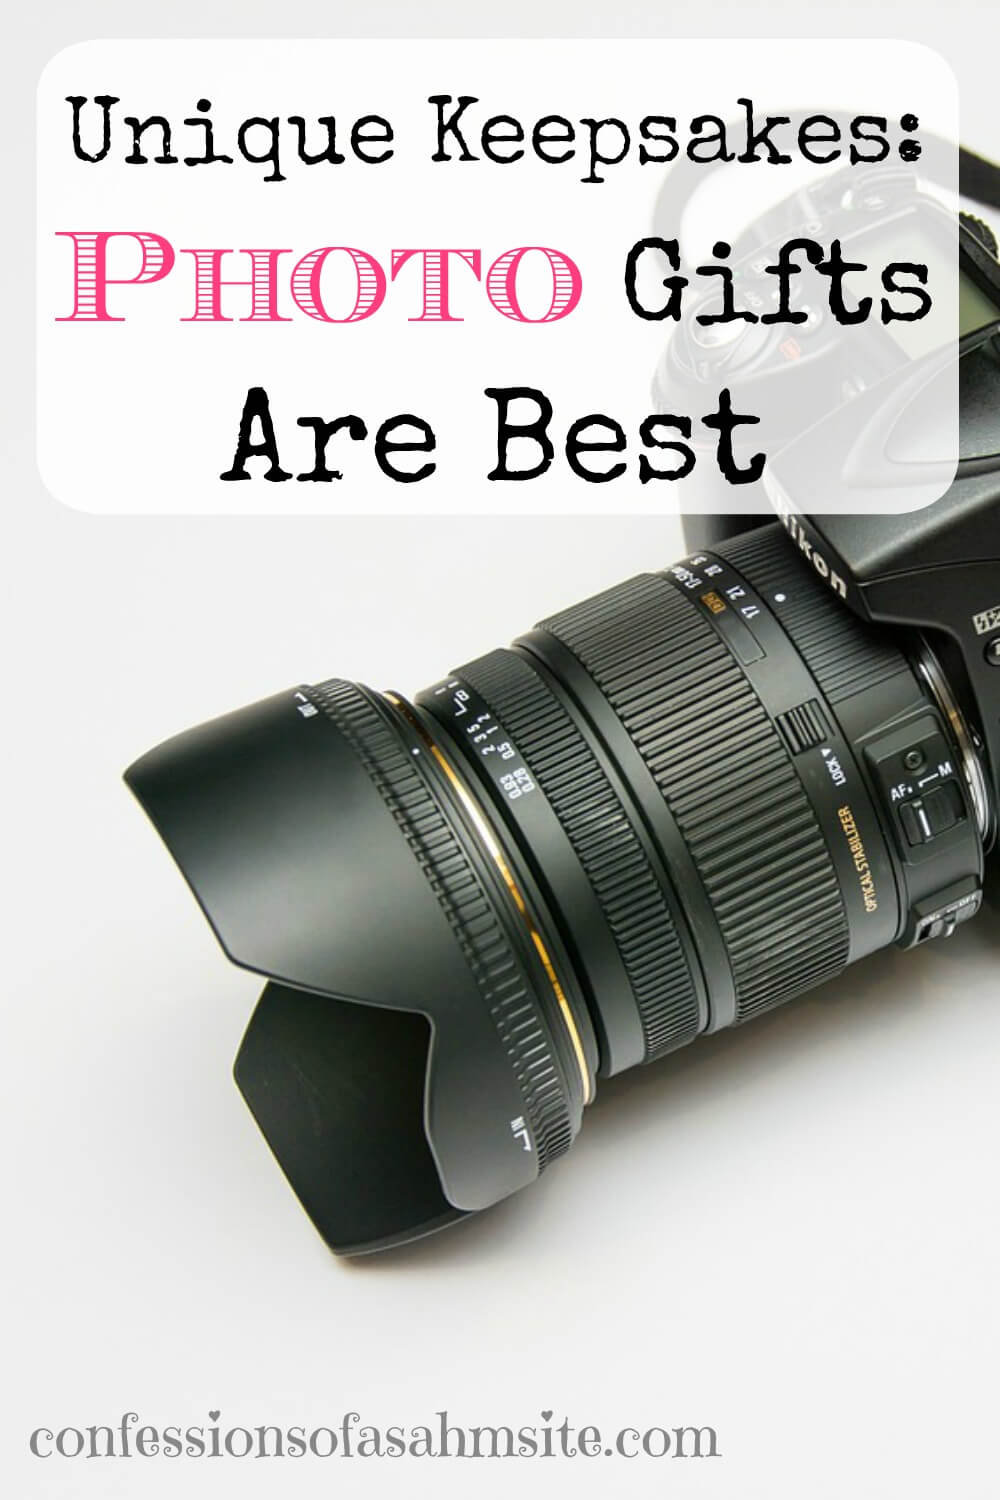 Unique Keepsakes: Photo Gifts are best. These are some great photo gift ideas. Plus a great product from this company.